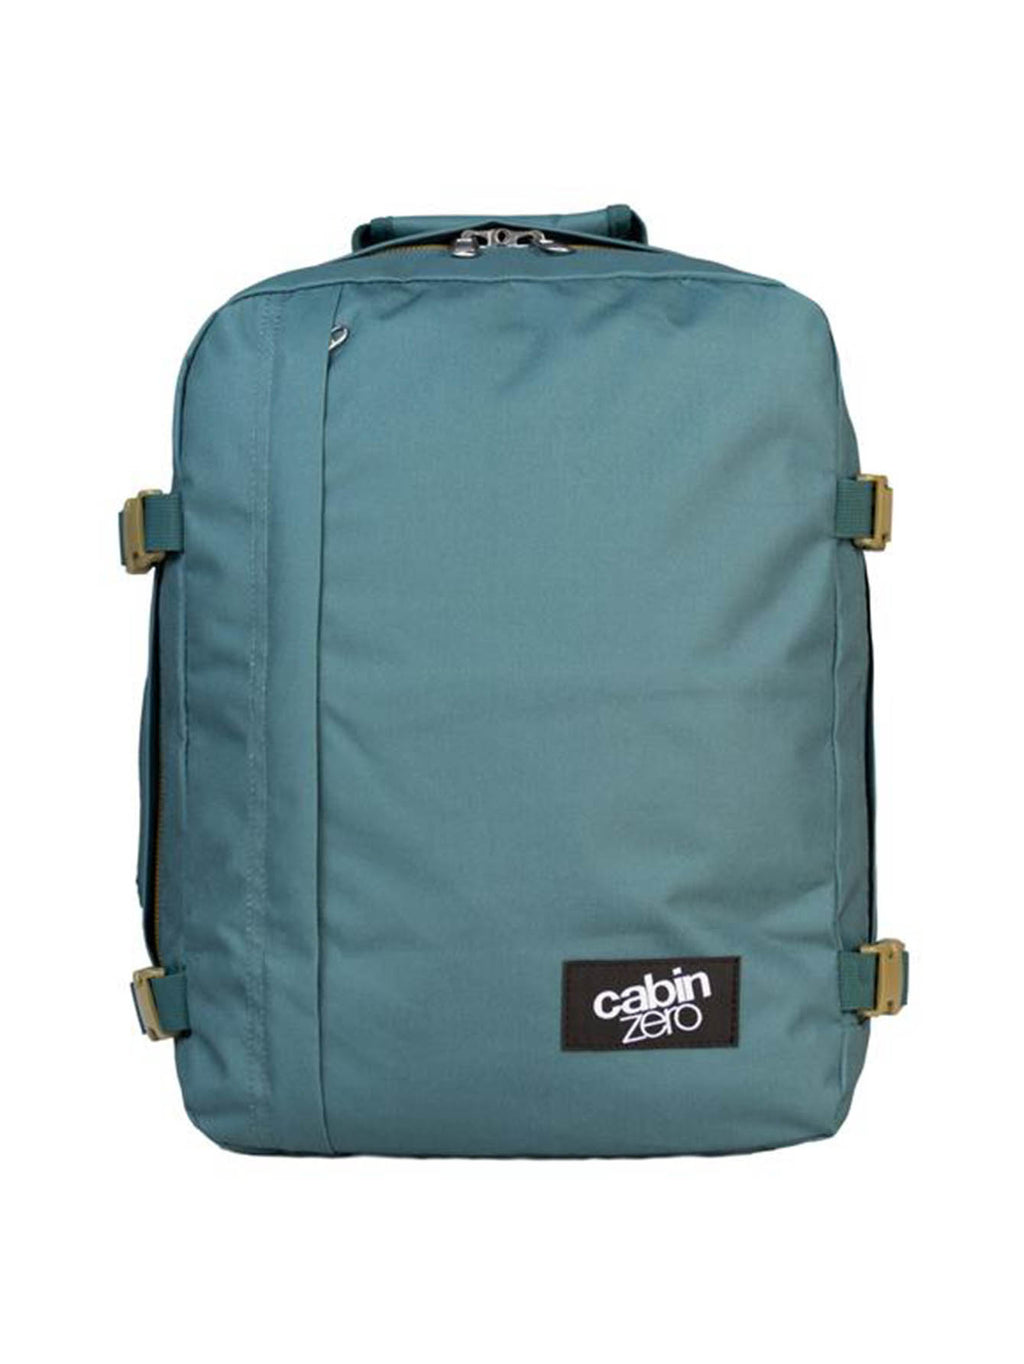 Cabinzero Classic 28L Ultra-Light Cabin Bag in Mallard Green Color - This Is For Him